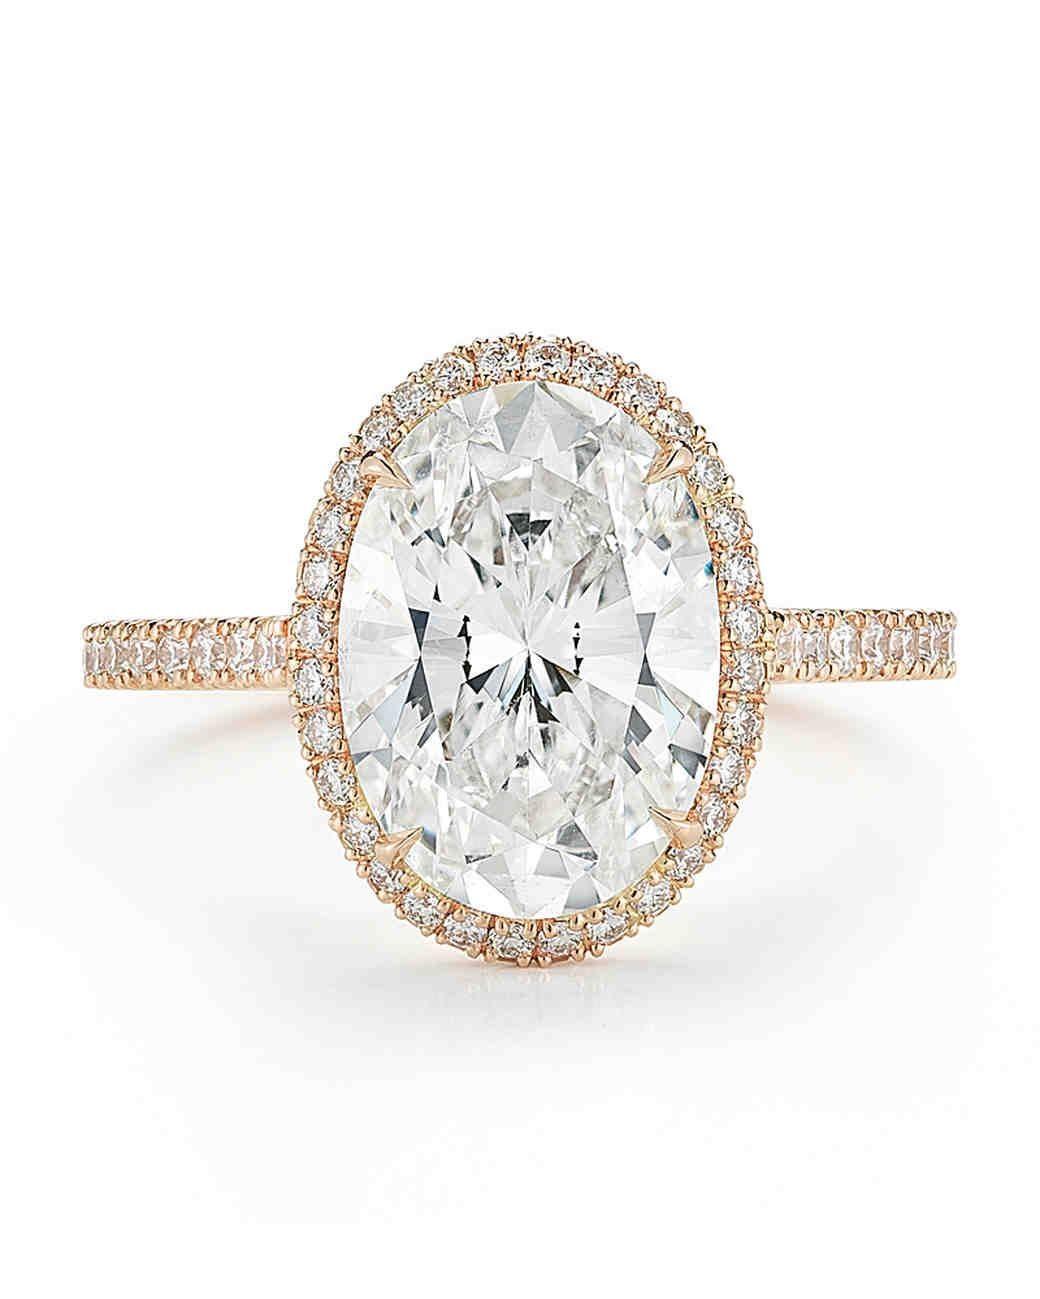 of style ring wedding kwiat rings promise images diamond xwjhxag engagement radiant halo platinum